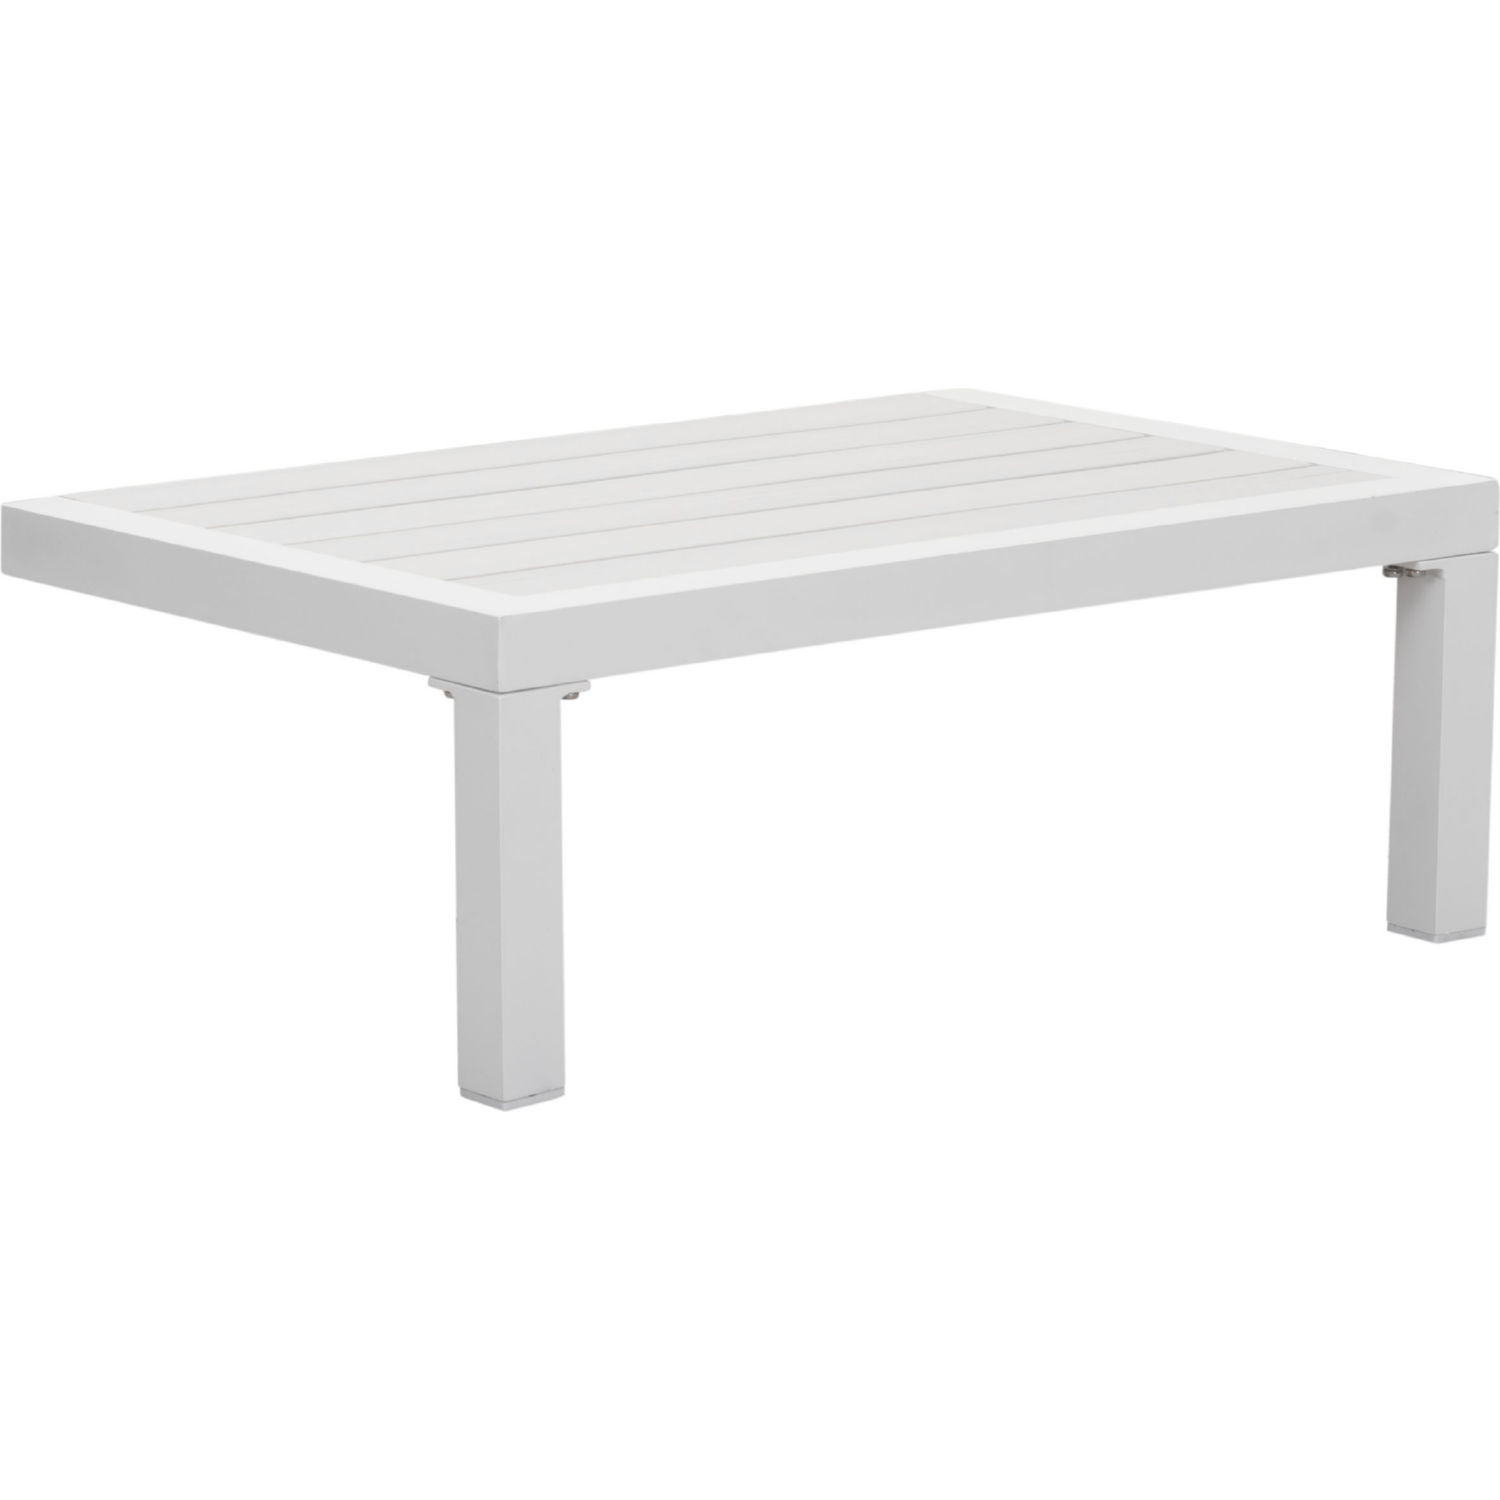 zuo santorini outdoor side table white polywood metal grey high gloss modern end with drawer sunflower tablecloth pubg settings dining and chairs clearance nightstand under